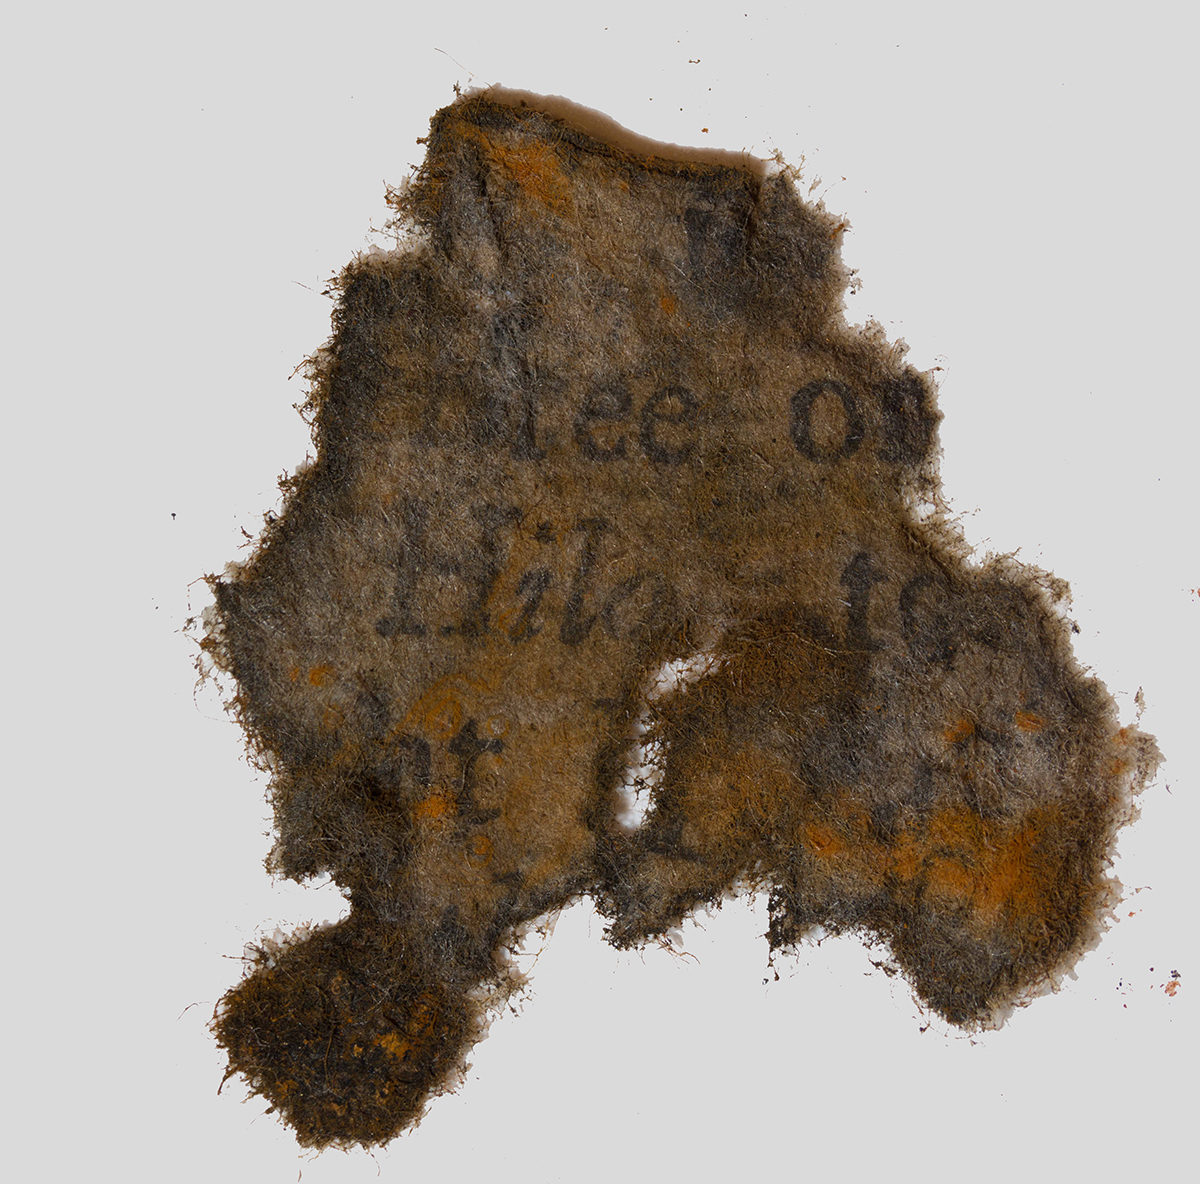 One the 16 paper fragments found in Blackbeard's ship.